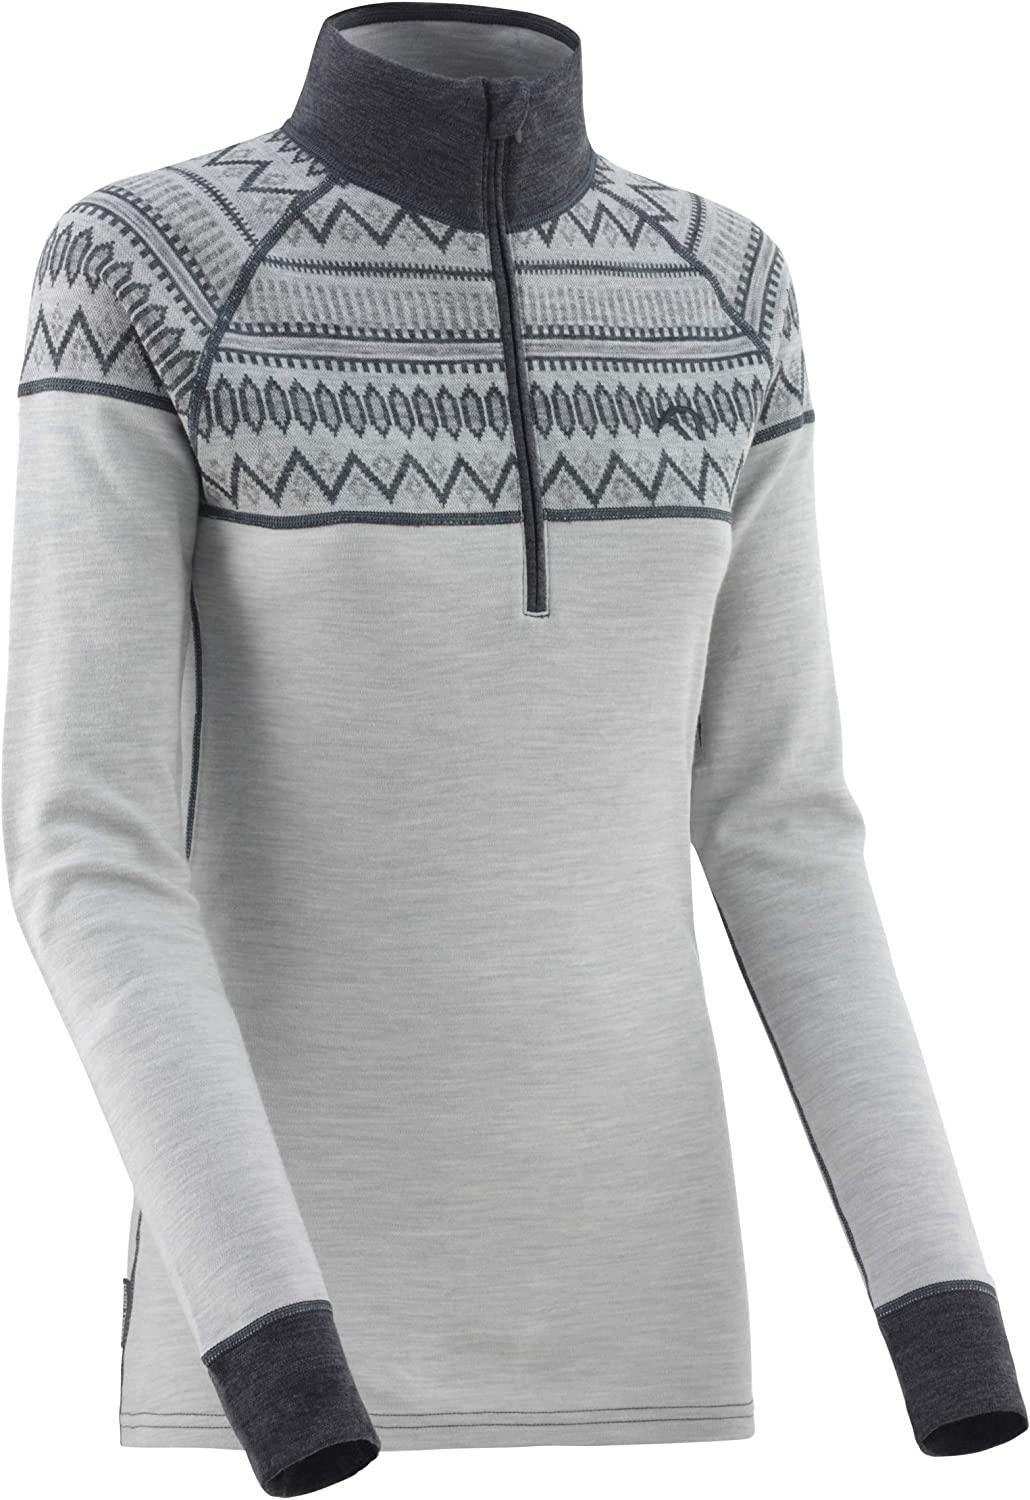 Lightweight Breathable Wicking Sports Tops TOG 24 Kirkella Womens Performance Base Layer Zip Up Top with Discreet Thumbholes Long-Sleeved Tech Outdoor Sports Training Exercise Shirt for Women